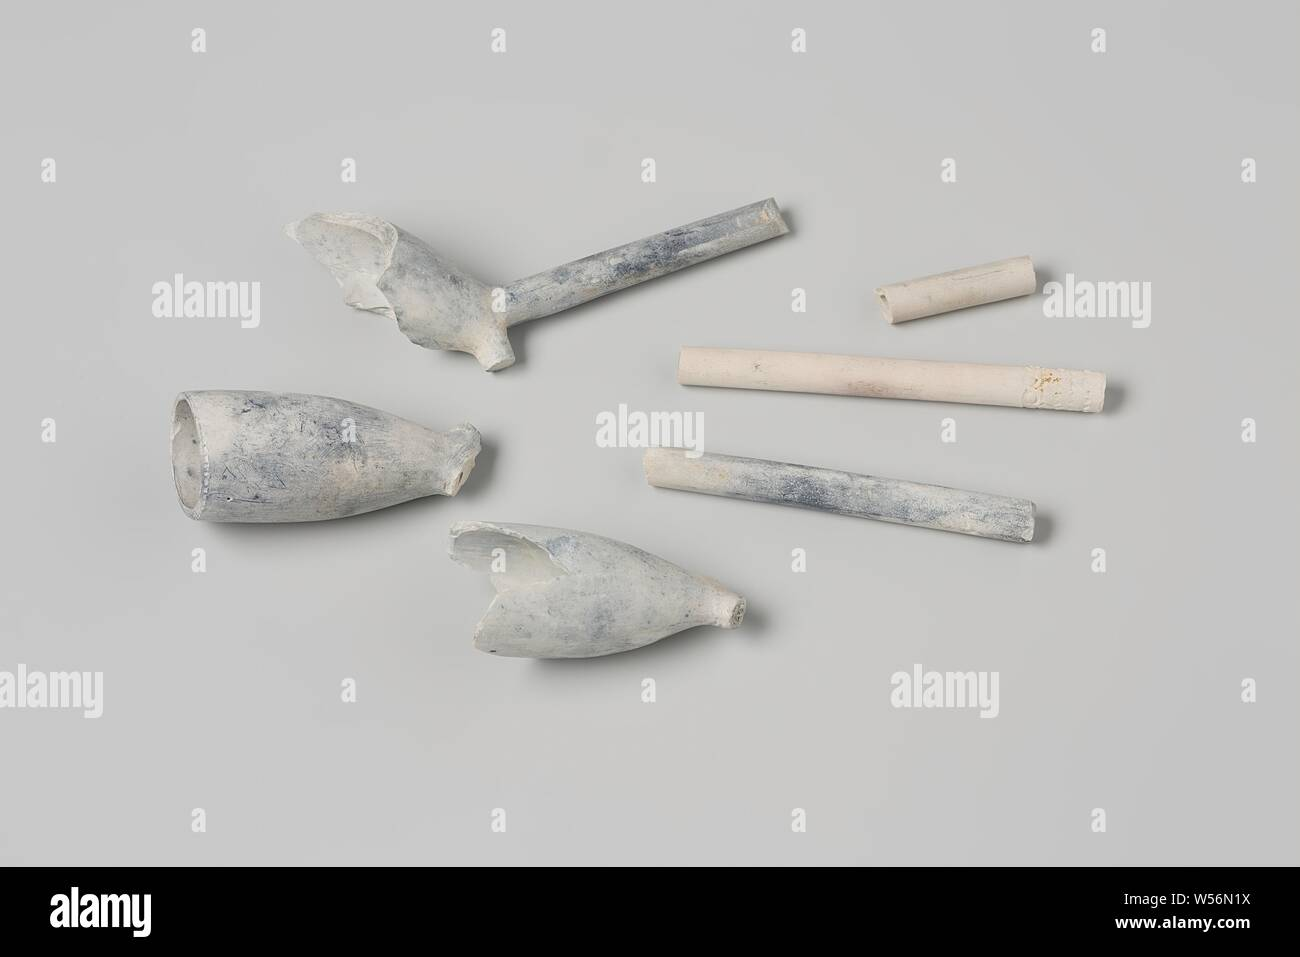 Fragments of pipe heads and pipe stalks from the wreck of the East Indies vessel 't Vliegend Hart, Three heads of earthen Gouda pipes: two WS crowned crown (one of which broken) and one broken heel mark crowned '41.' Three pieces of stem, one decorated. Fragments of bowls and stems, Dutch East India Company, 't Vliegend Hart (ship), WS, Gouda, 1720 - 2-Mar-1735, pipe clay, l 7.3 cm × w 1.8 cm × d 3.7 cm × l 2.6 cm × d 0.6 cm Stock Photo